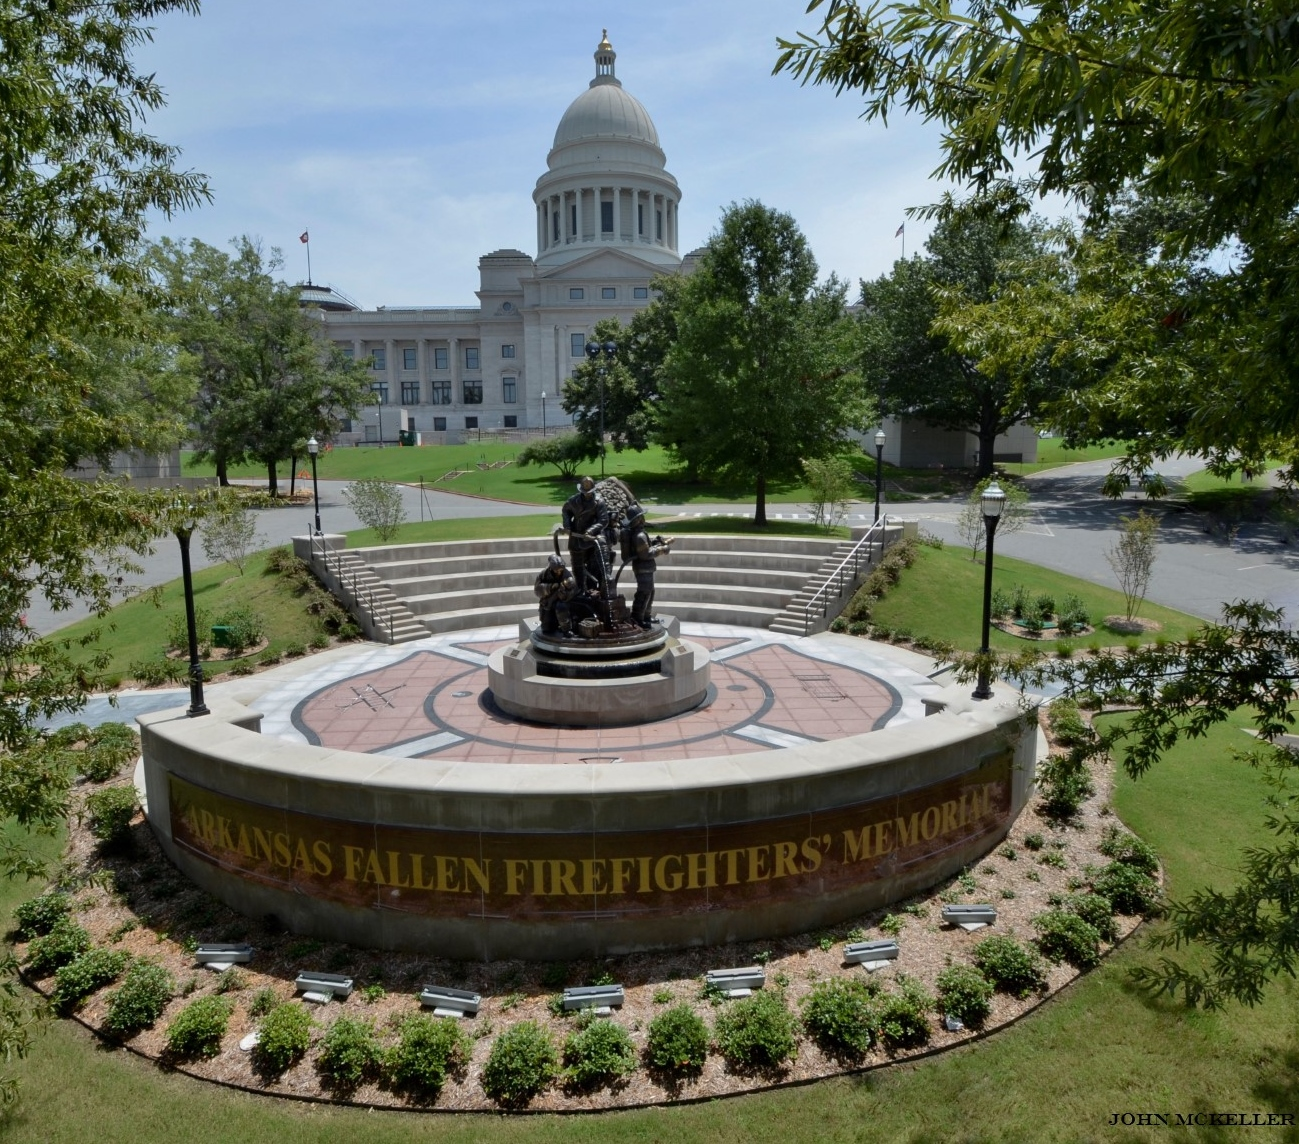 Fallen Firefighters Memorial